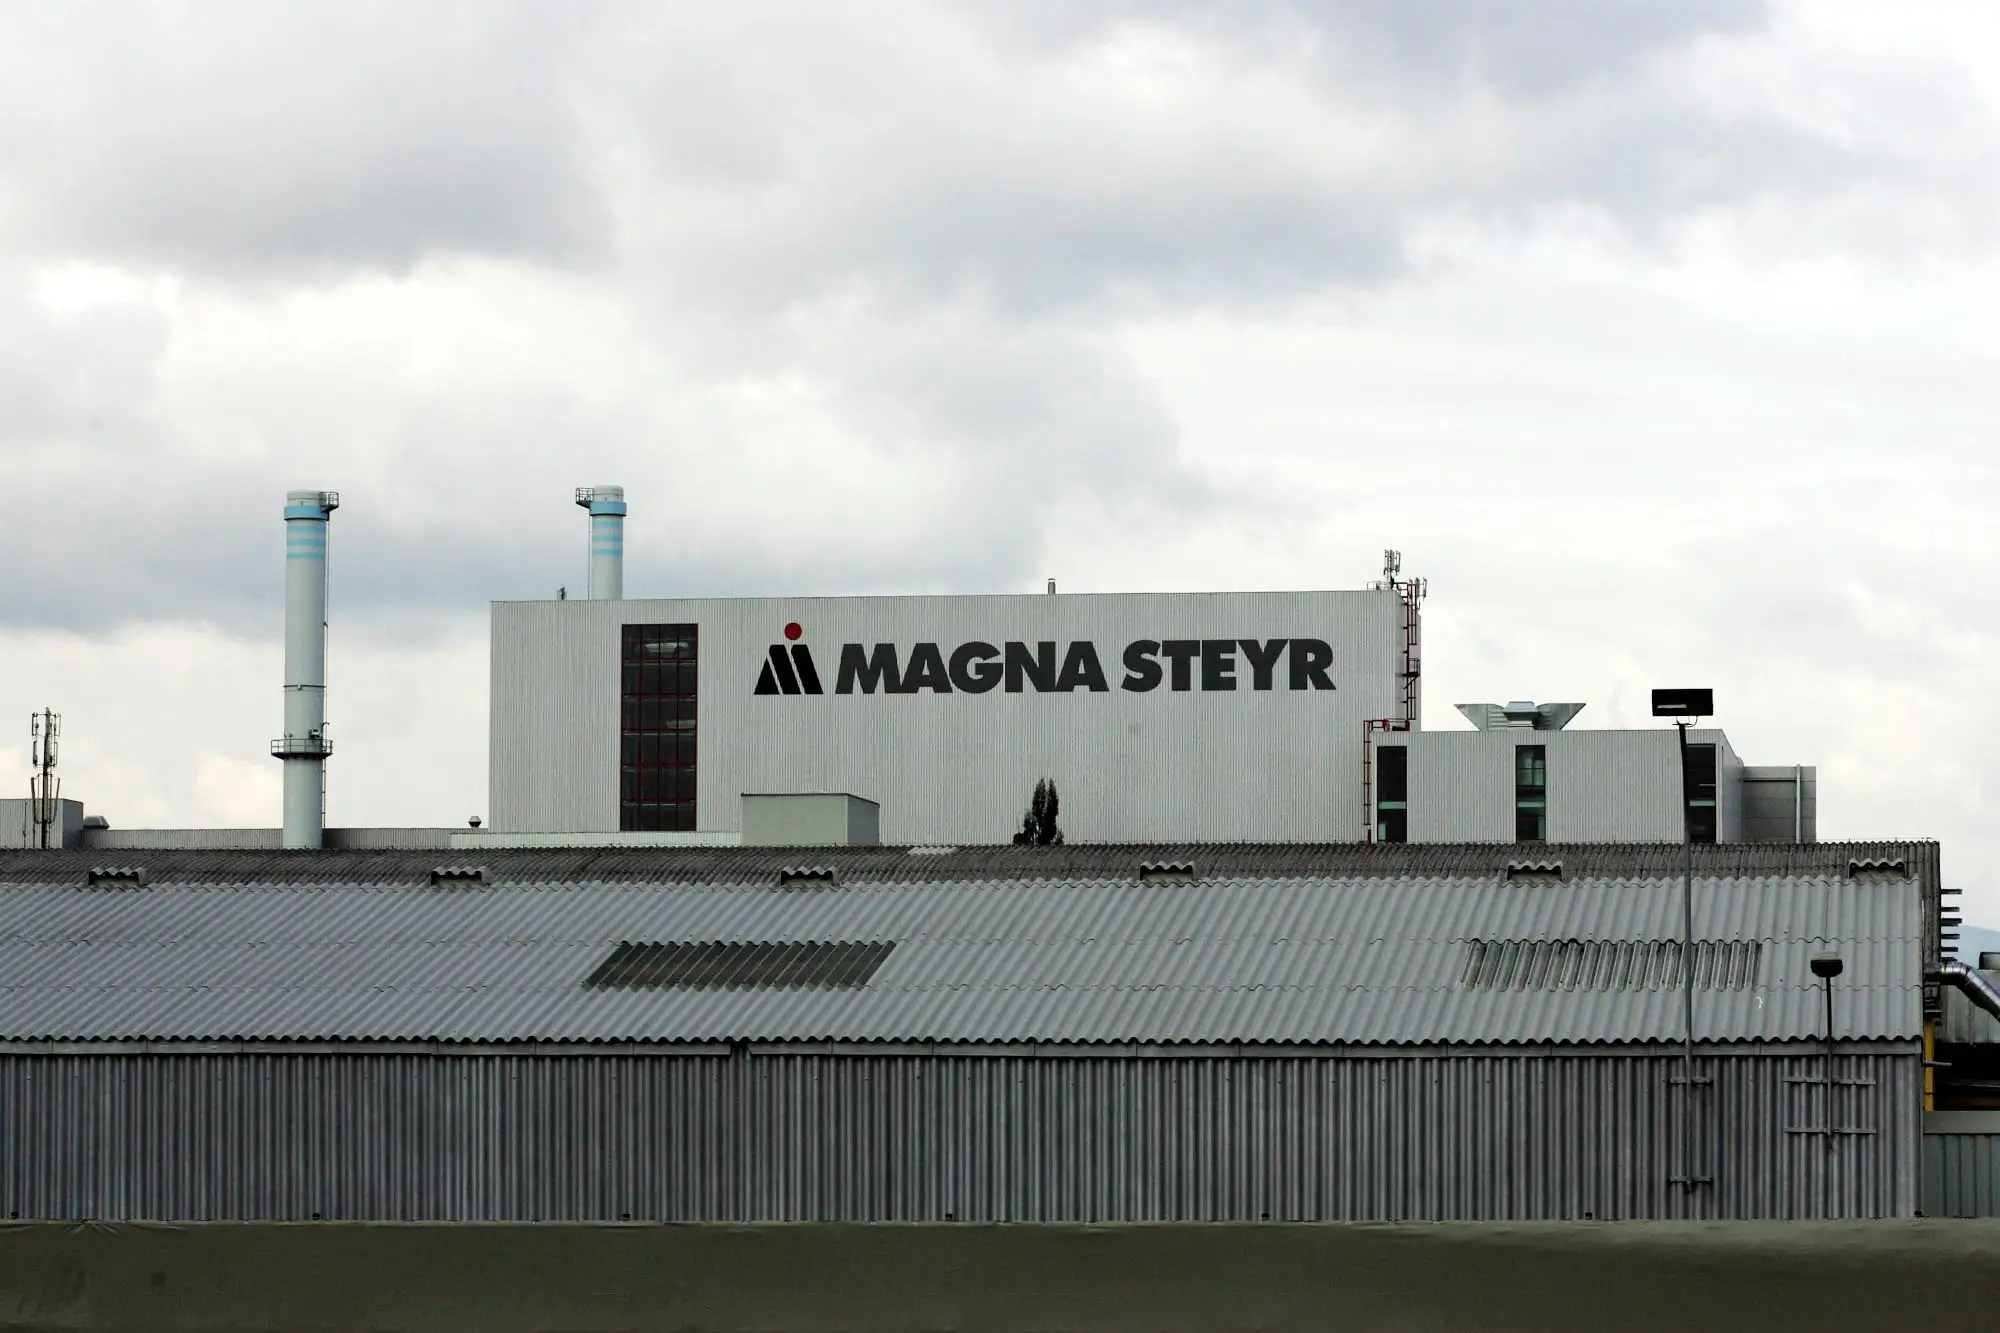 The rumor is that the Apple car will be built at one of Magna's Austrian facilities and that there's currently research being done at a secret facility in Berlin.